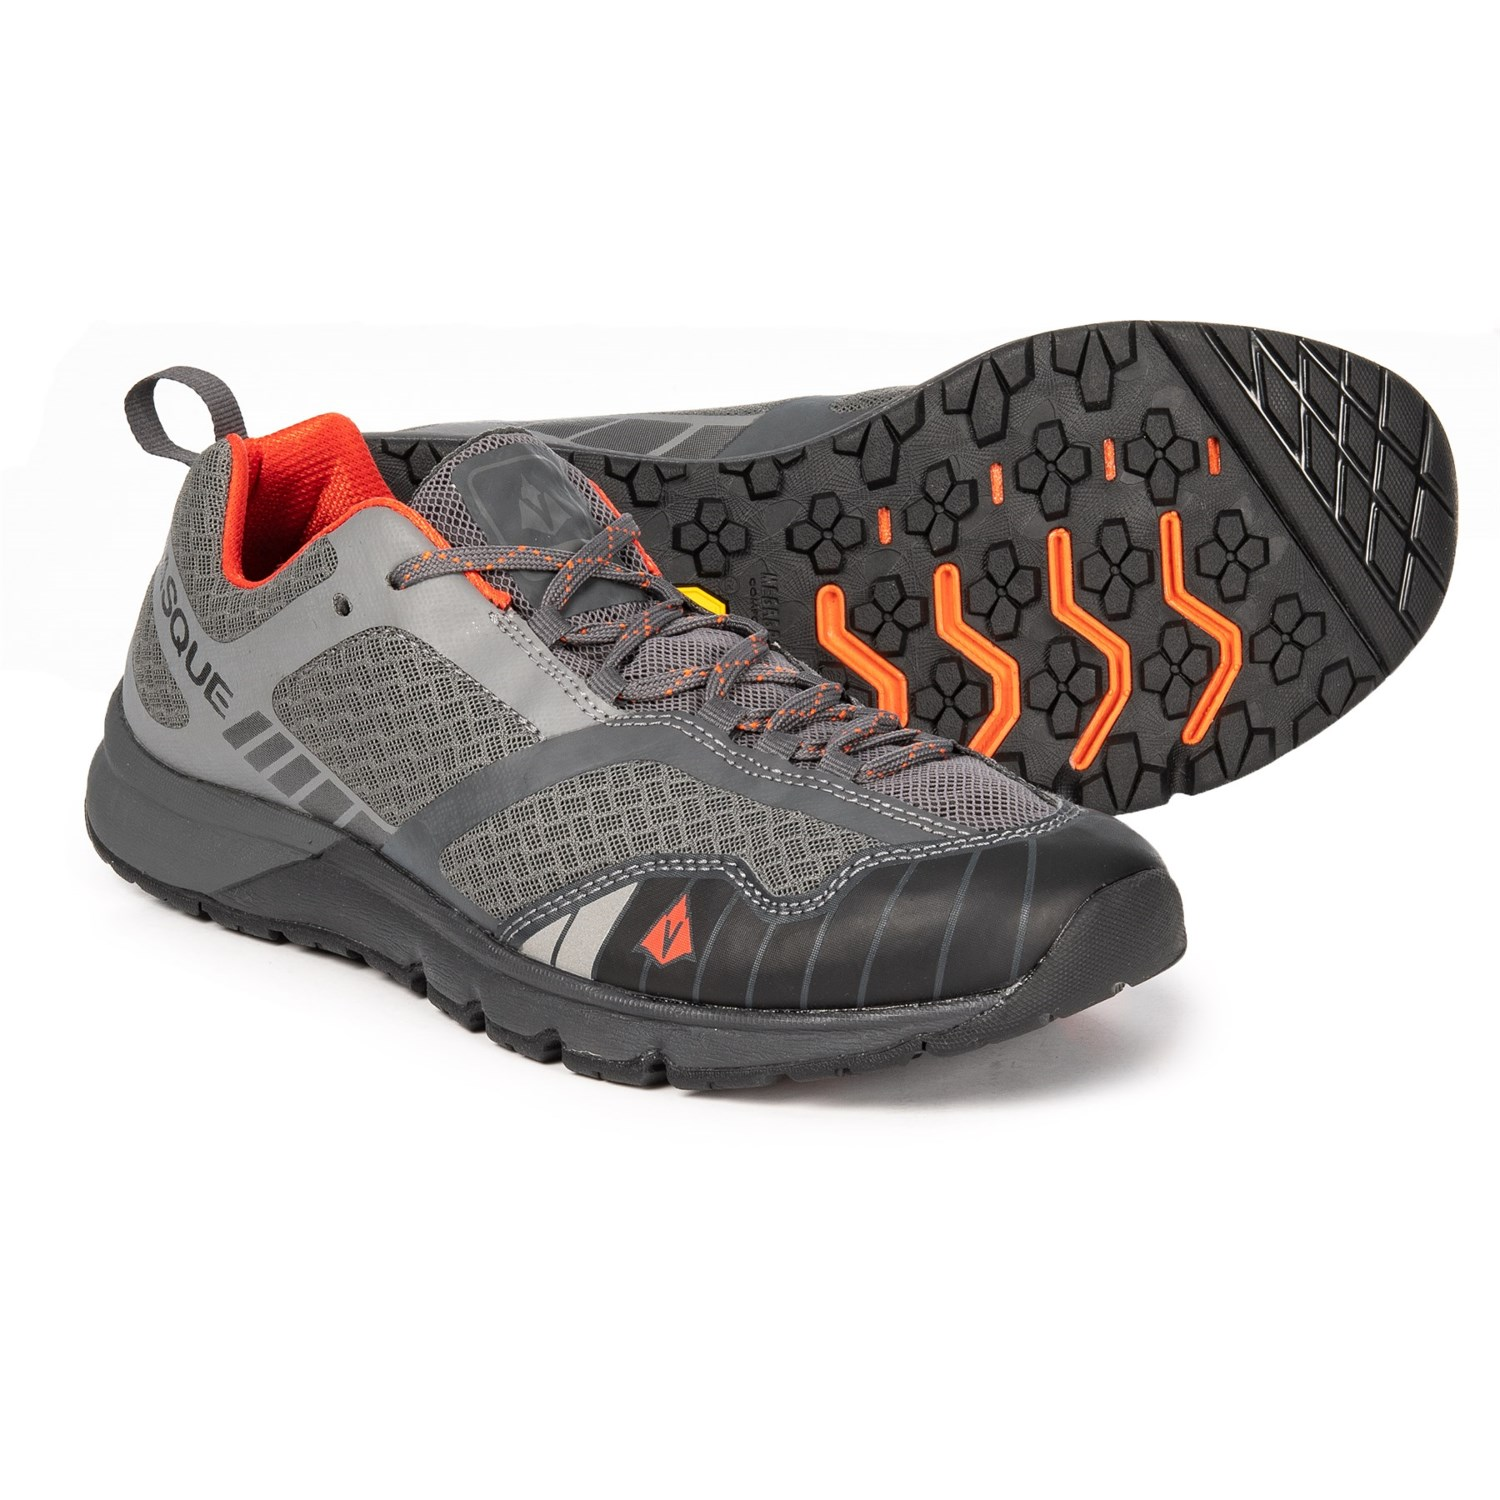 hot sale online 4054a 35ce5 Vasque Vertical Velocity Trail Running Shoes (For Men)